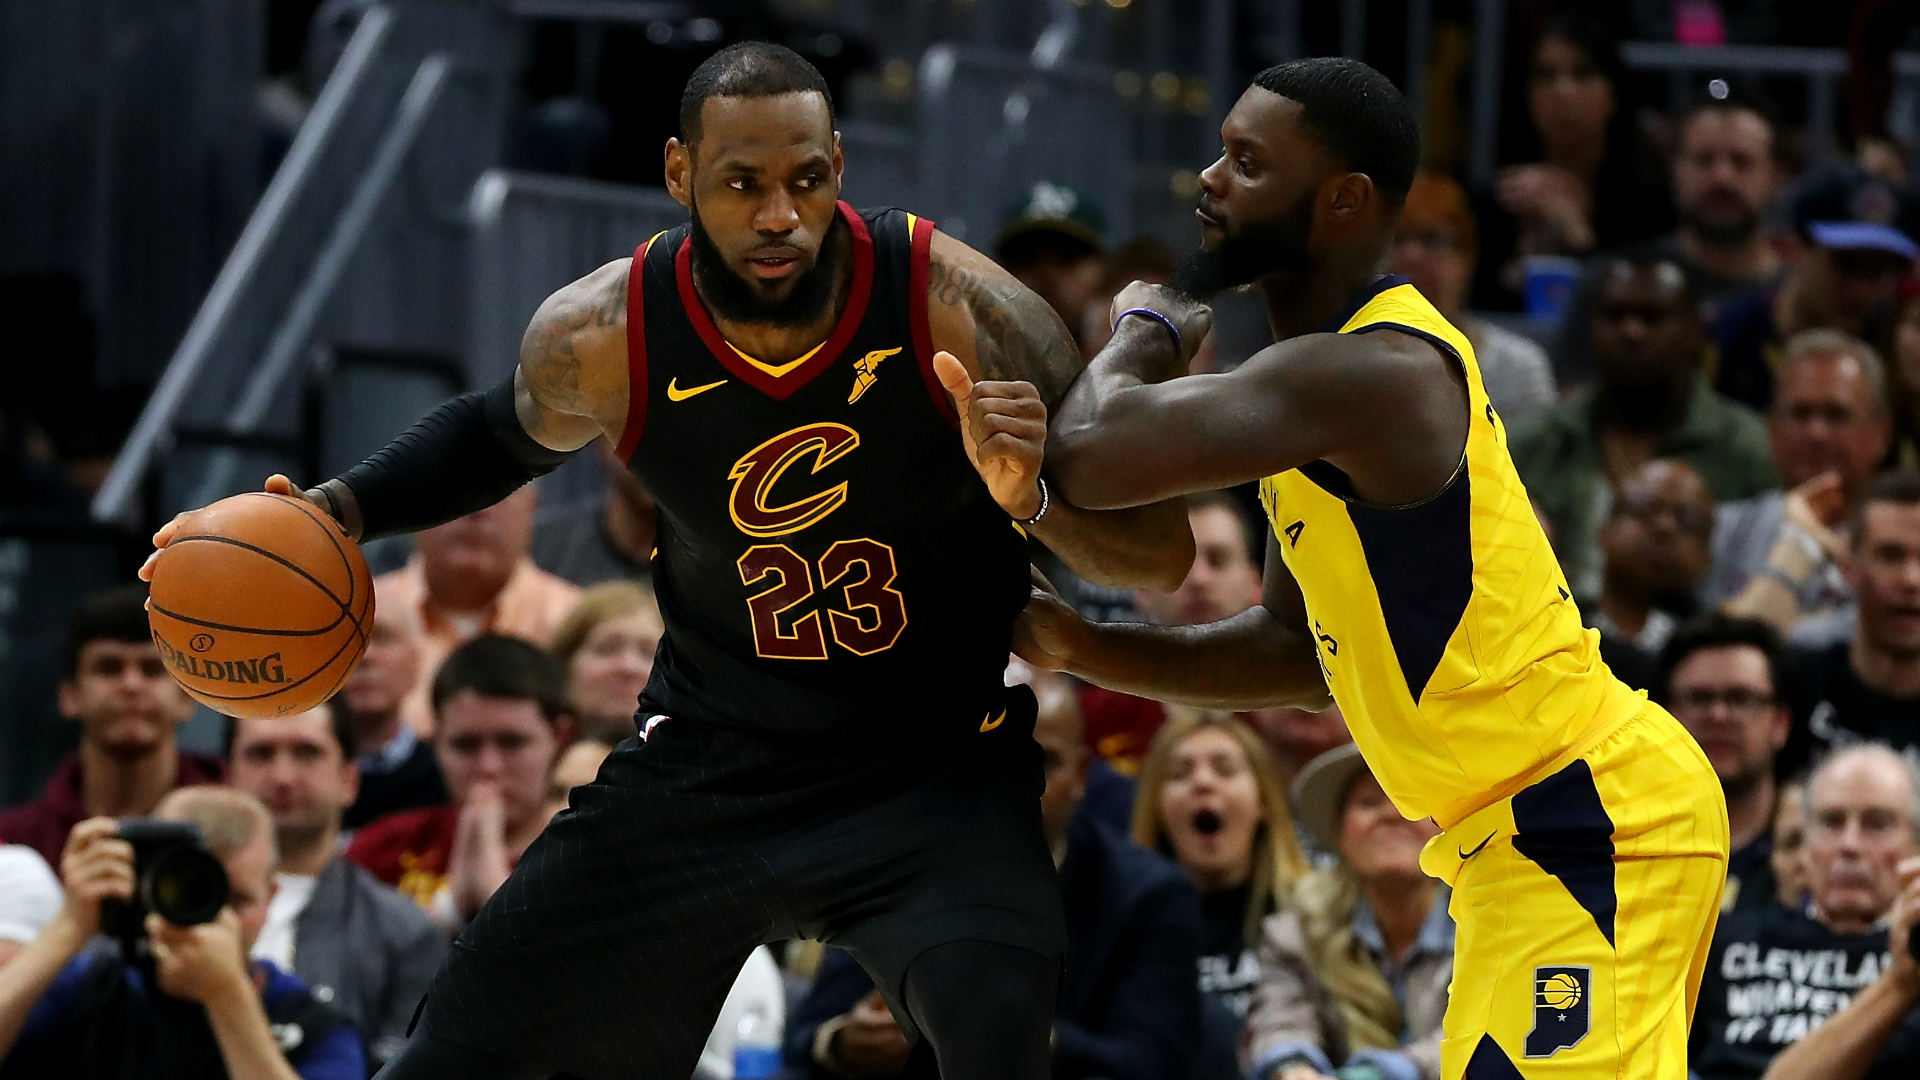 Nba Finals Live Streaming Video Free | All Basketball Scores Info